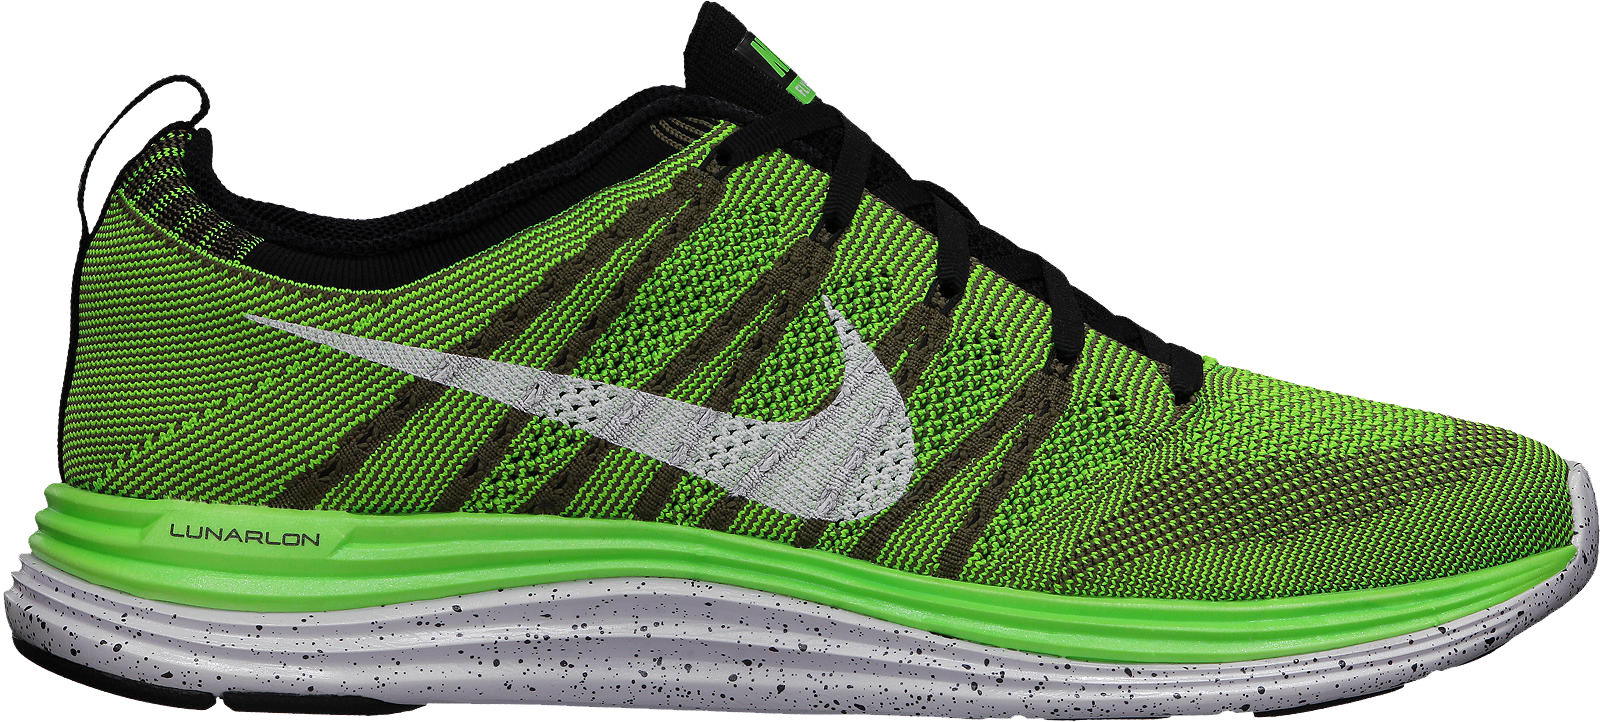 Nike Flyknit One+ Shoes SU13